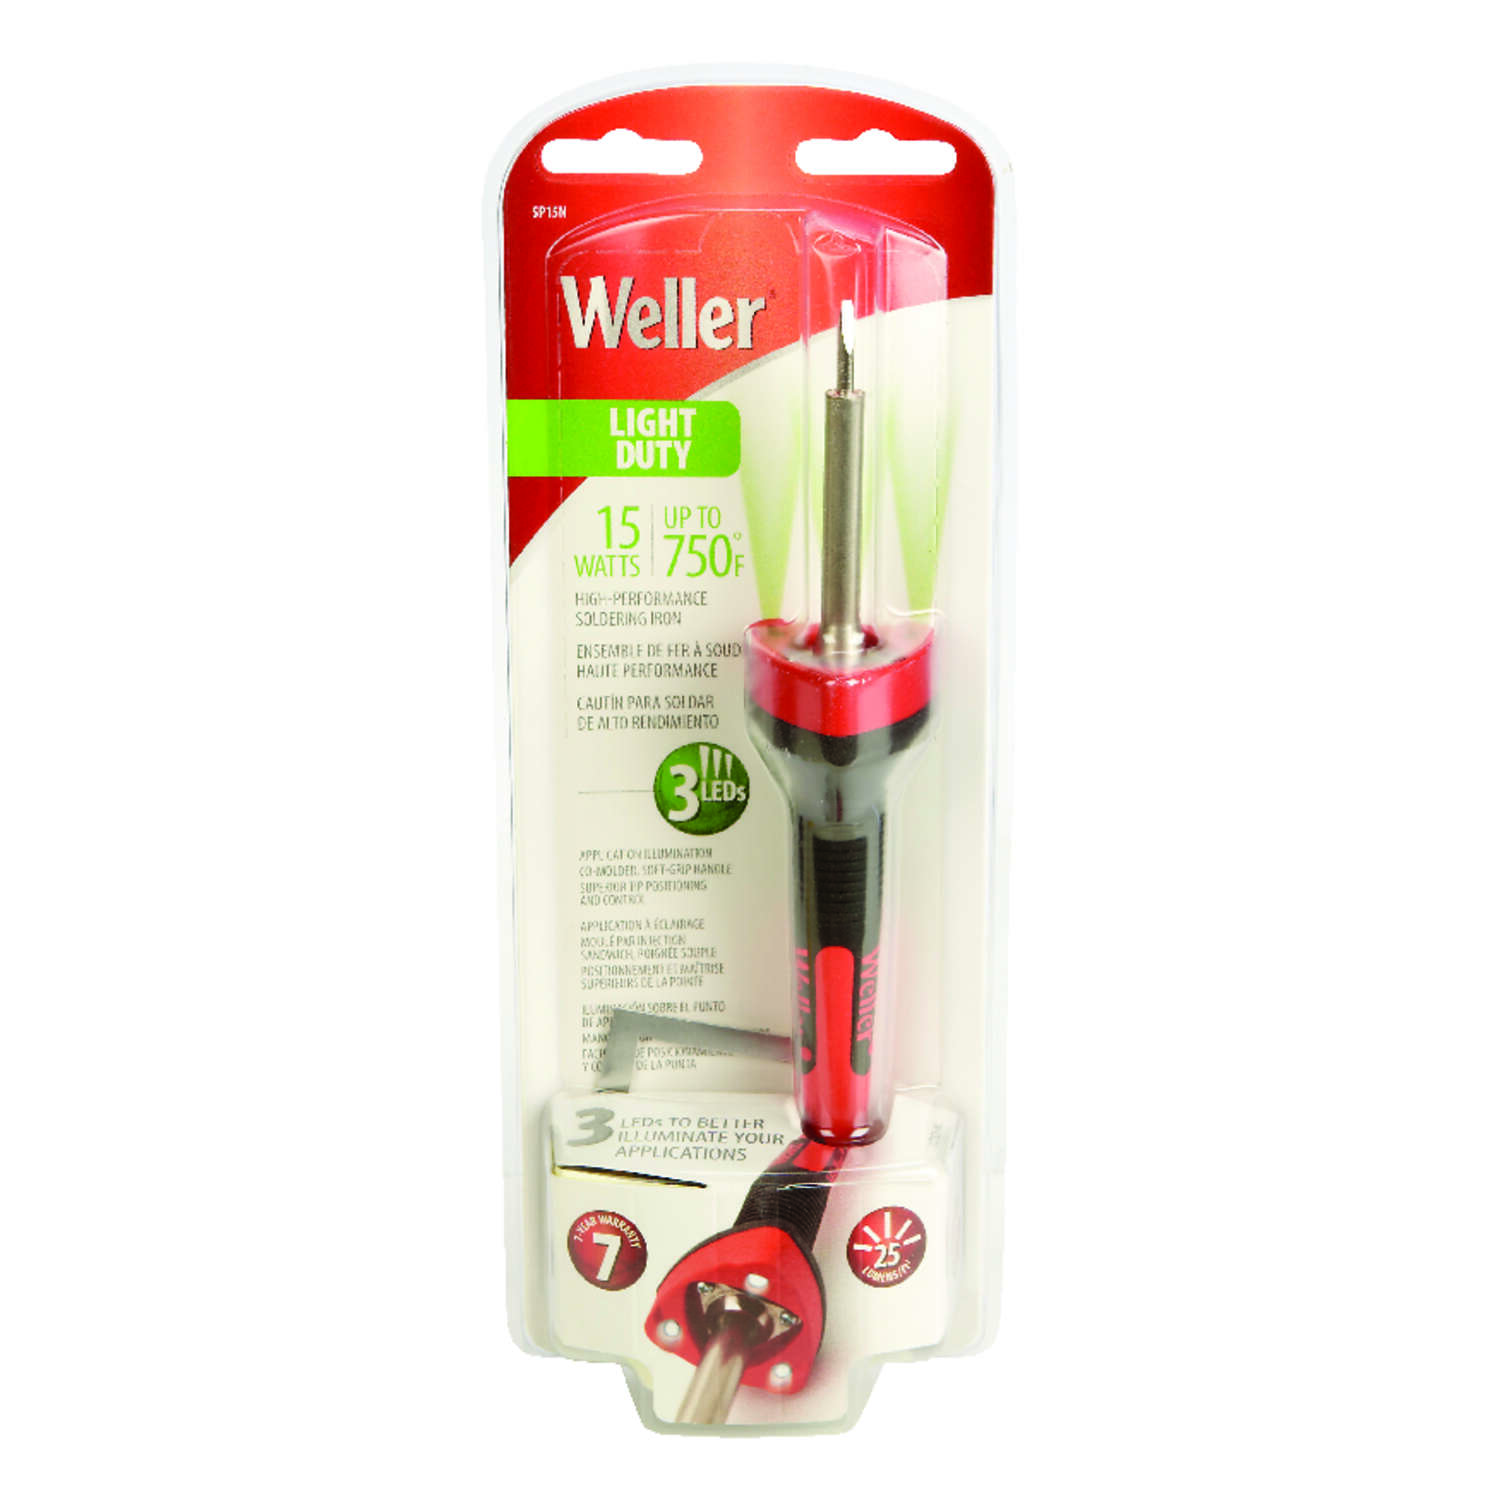 Weller  10.8 in. Corded  Soldering Gun Kit  15 watts Orange  1 pk